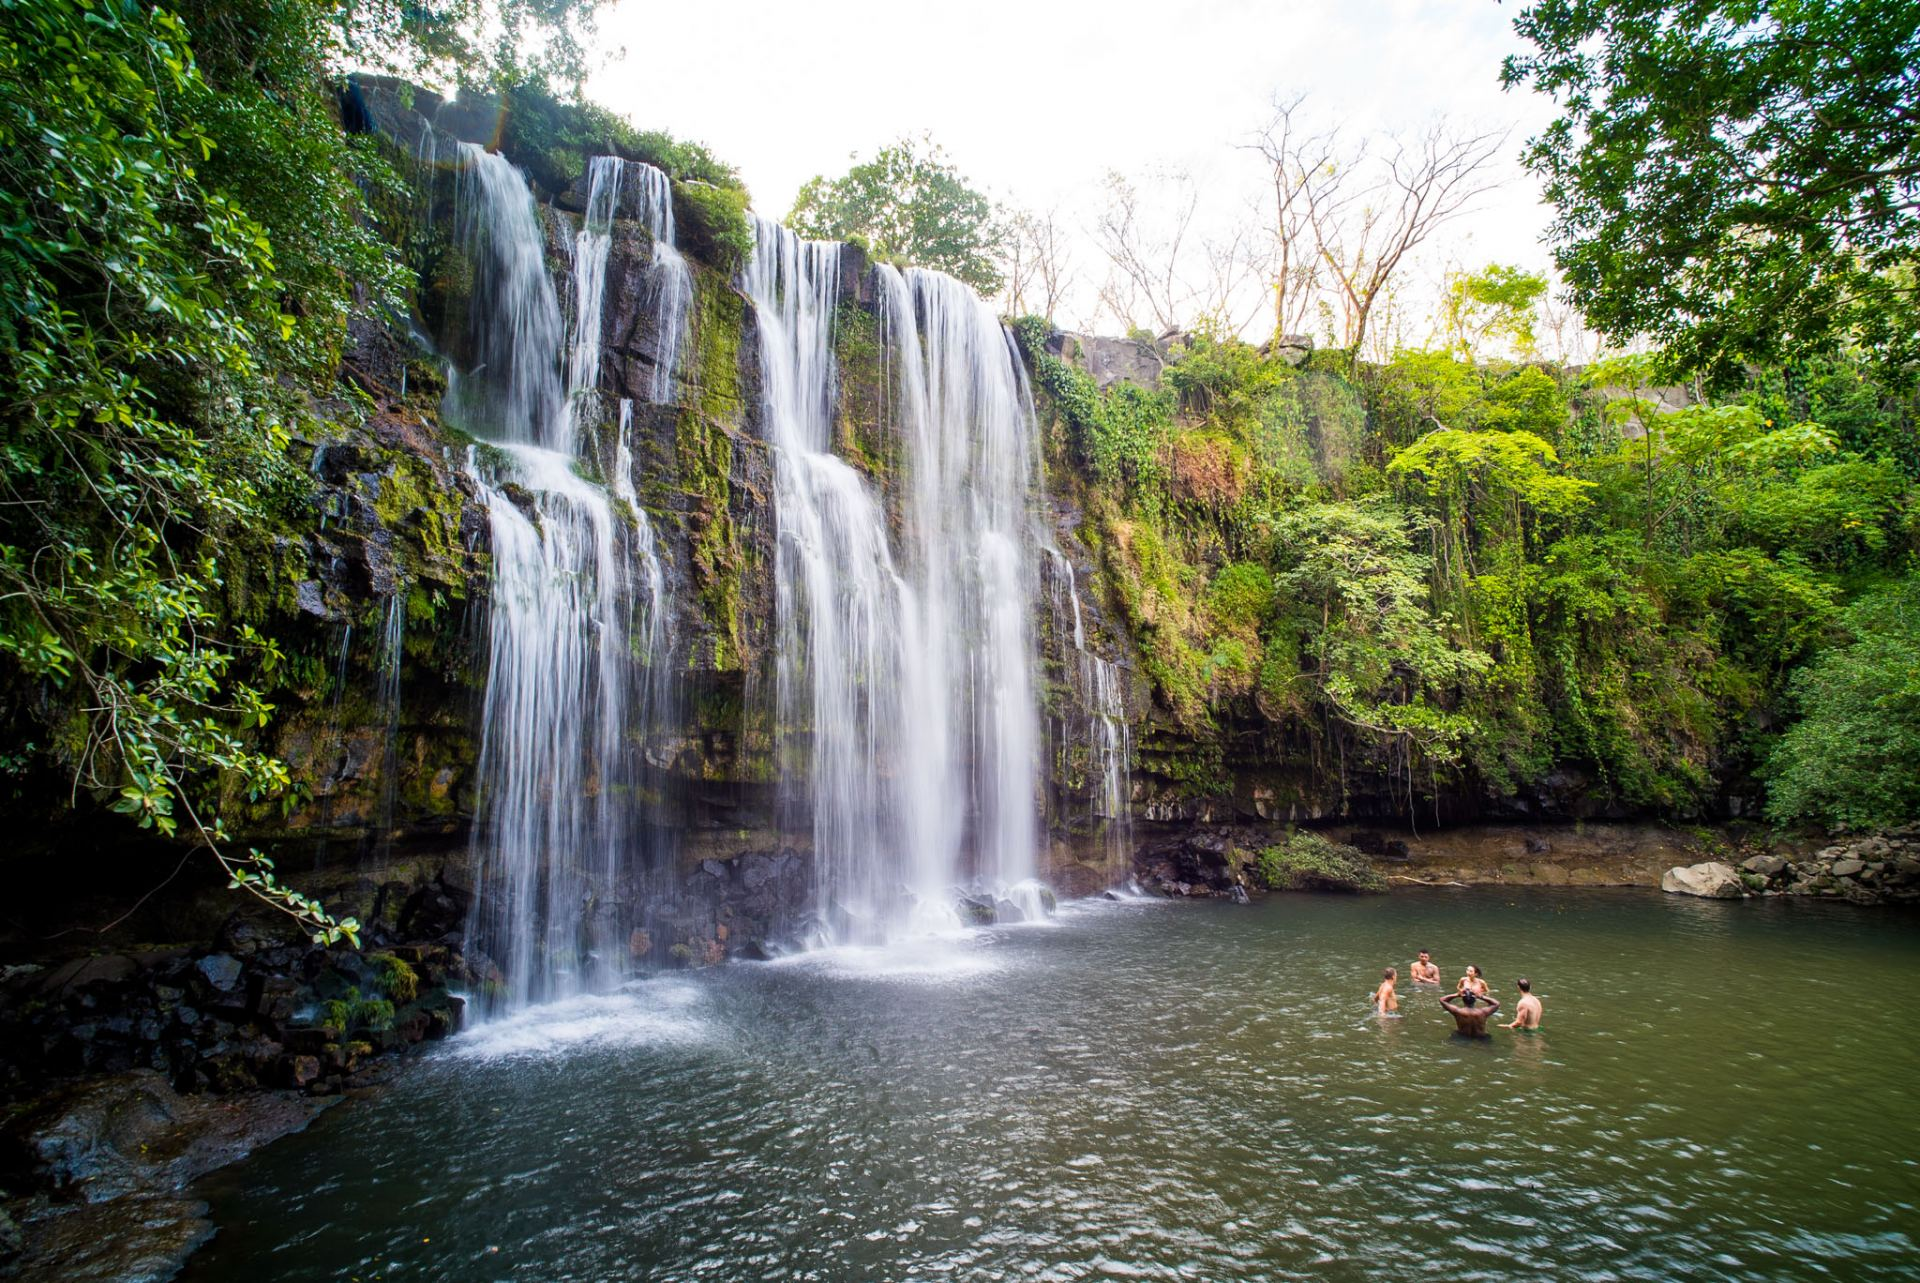 Secret Costa Rica waterfall near Liberia: Llanos de Cortes